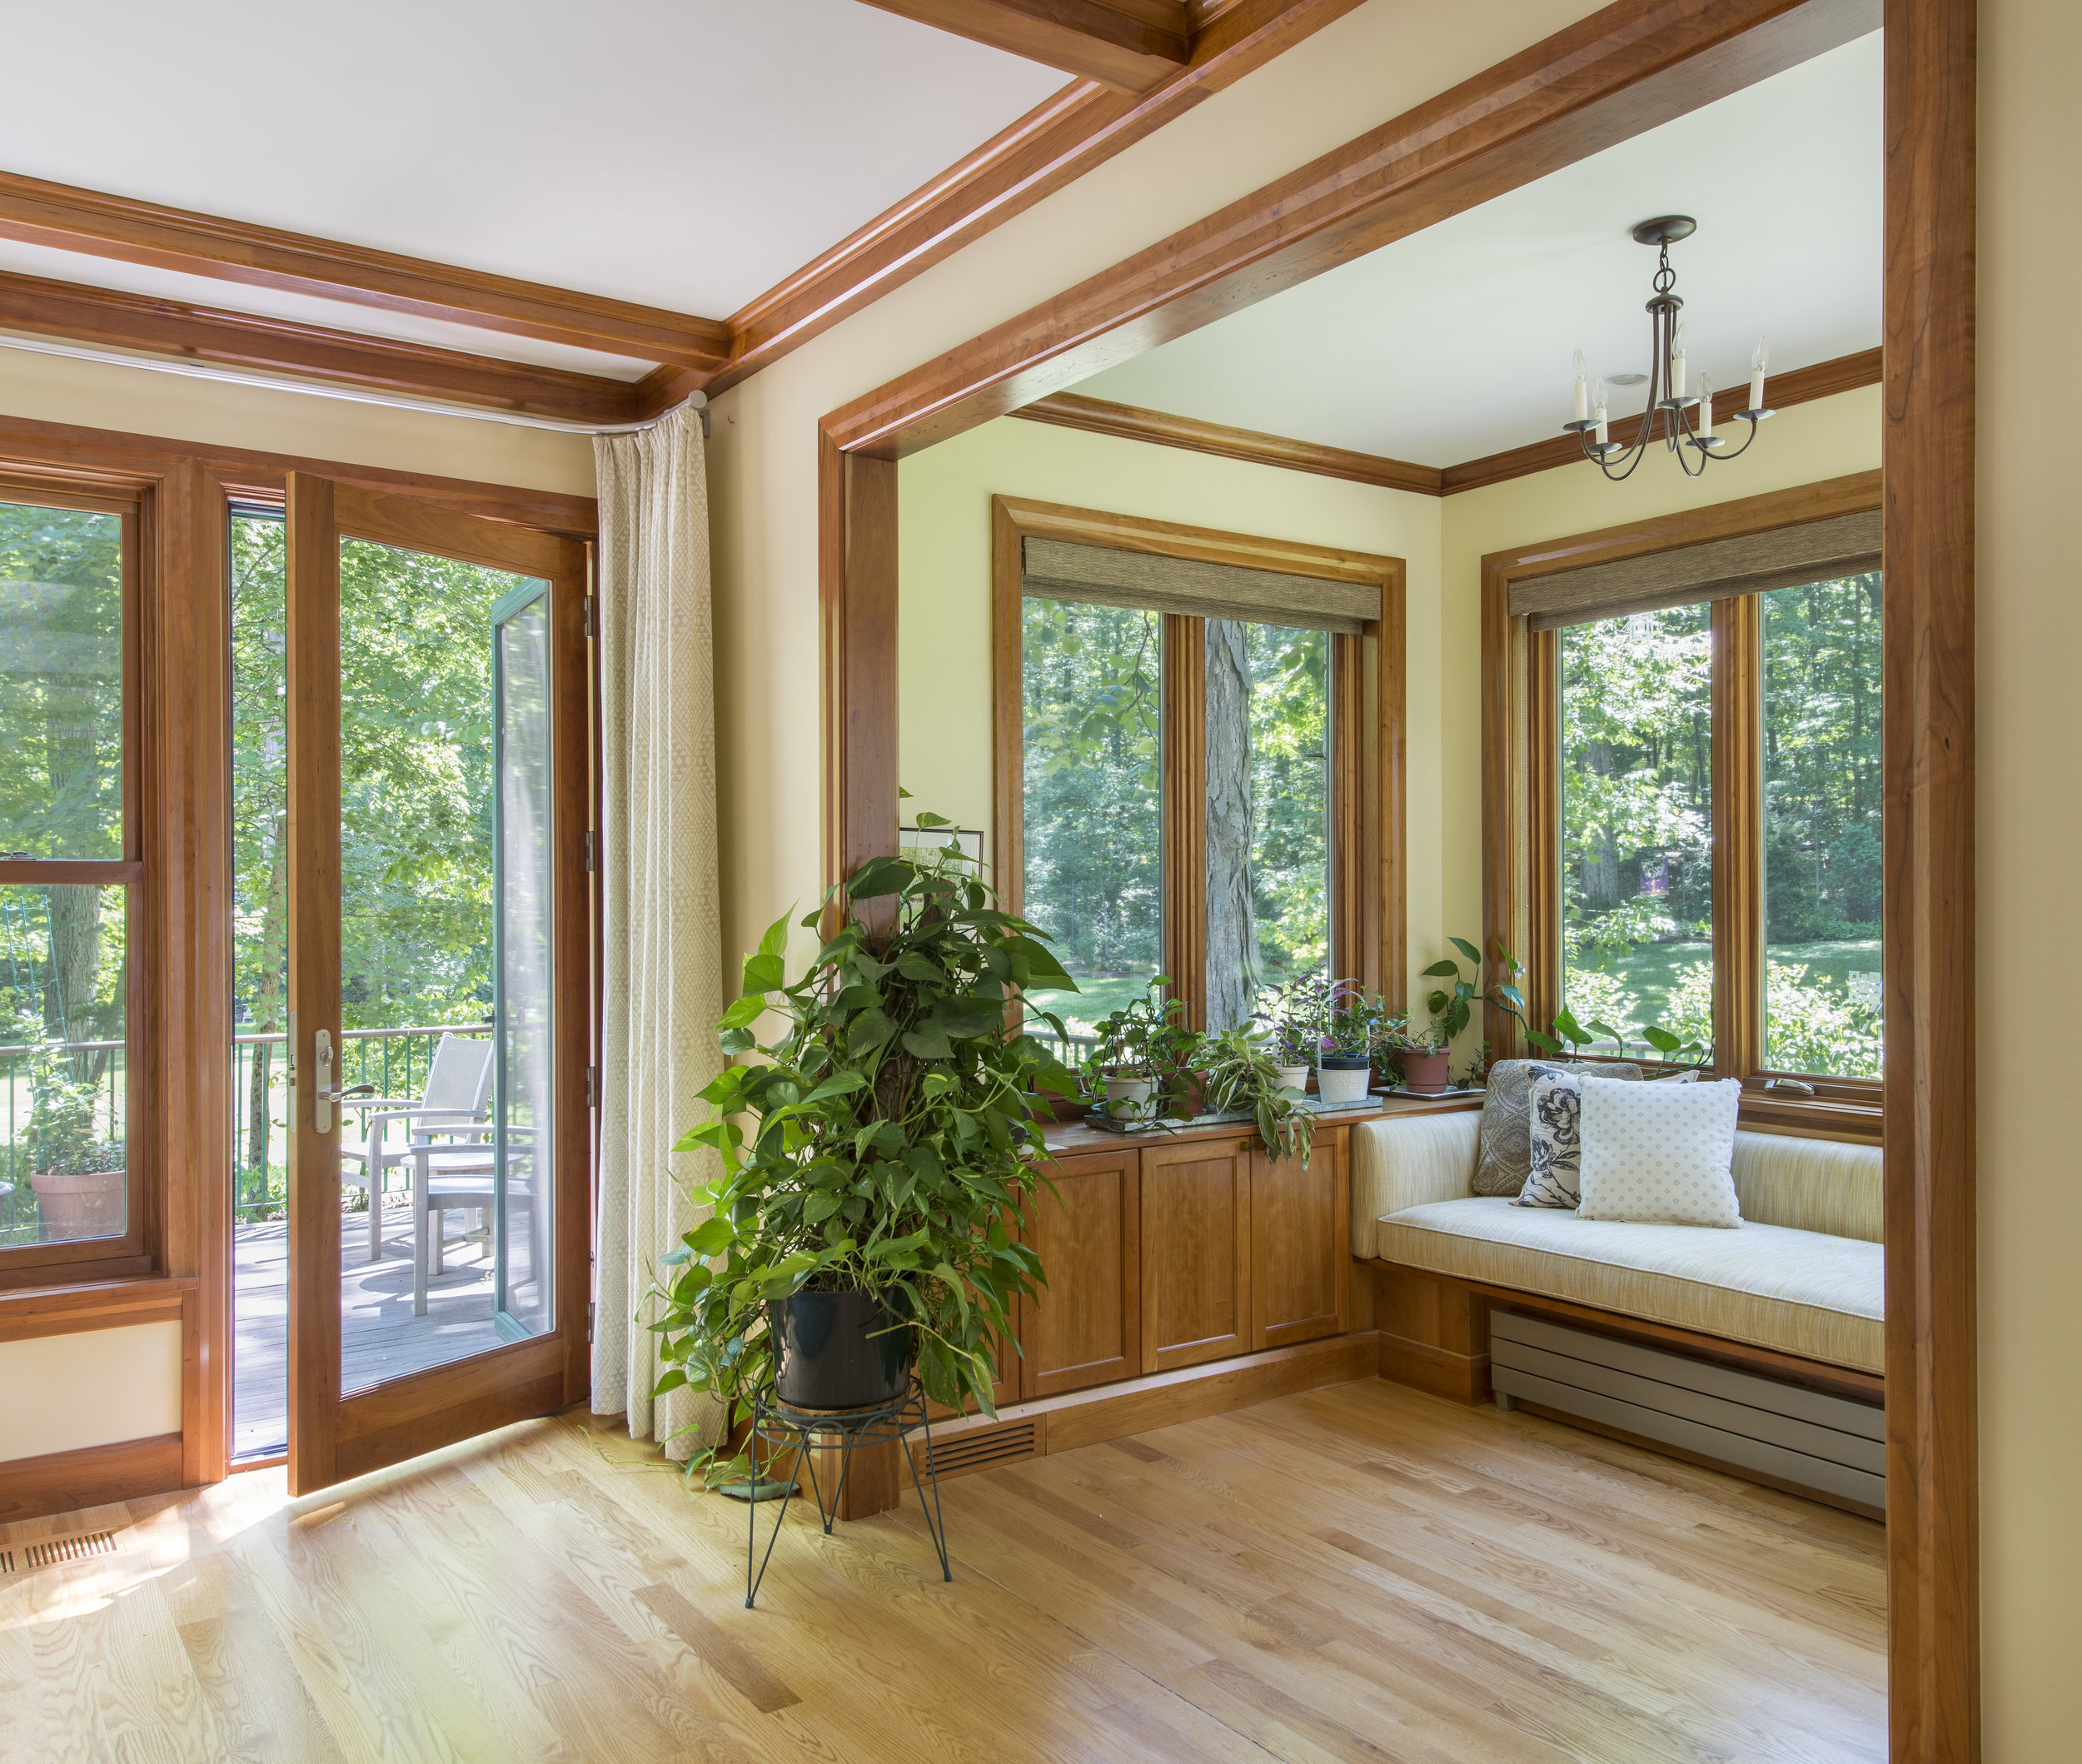 Wood windows with custom built-in seat